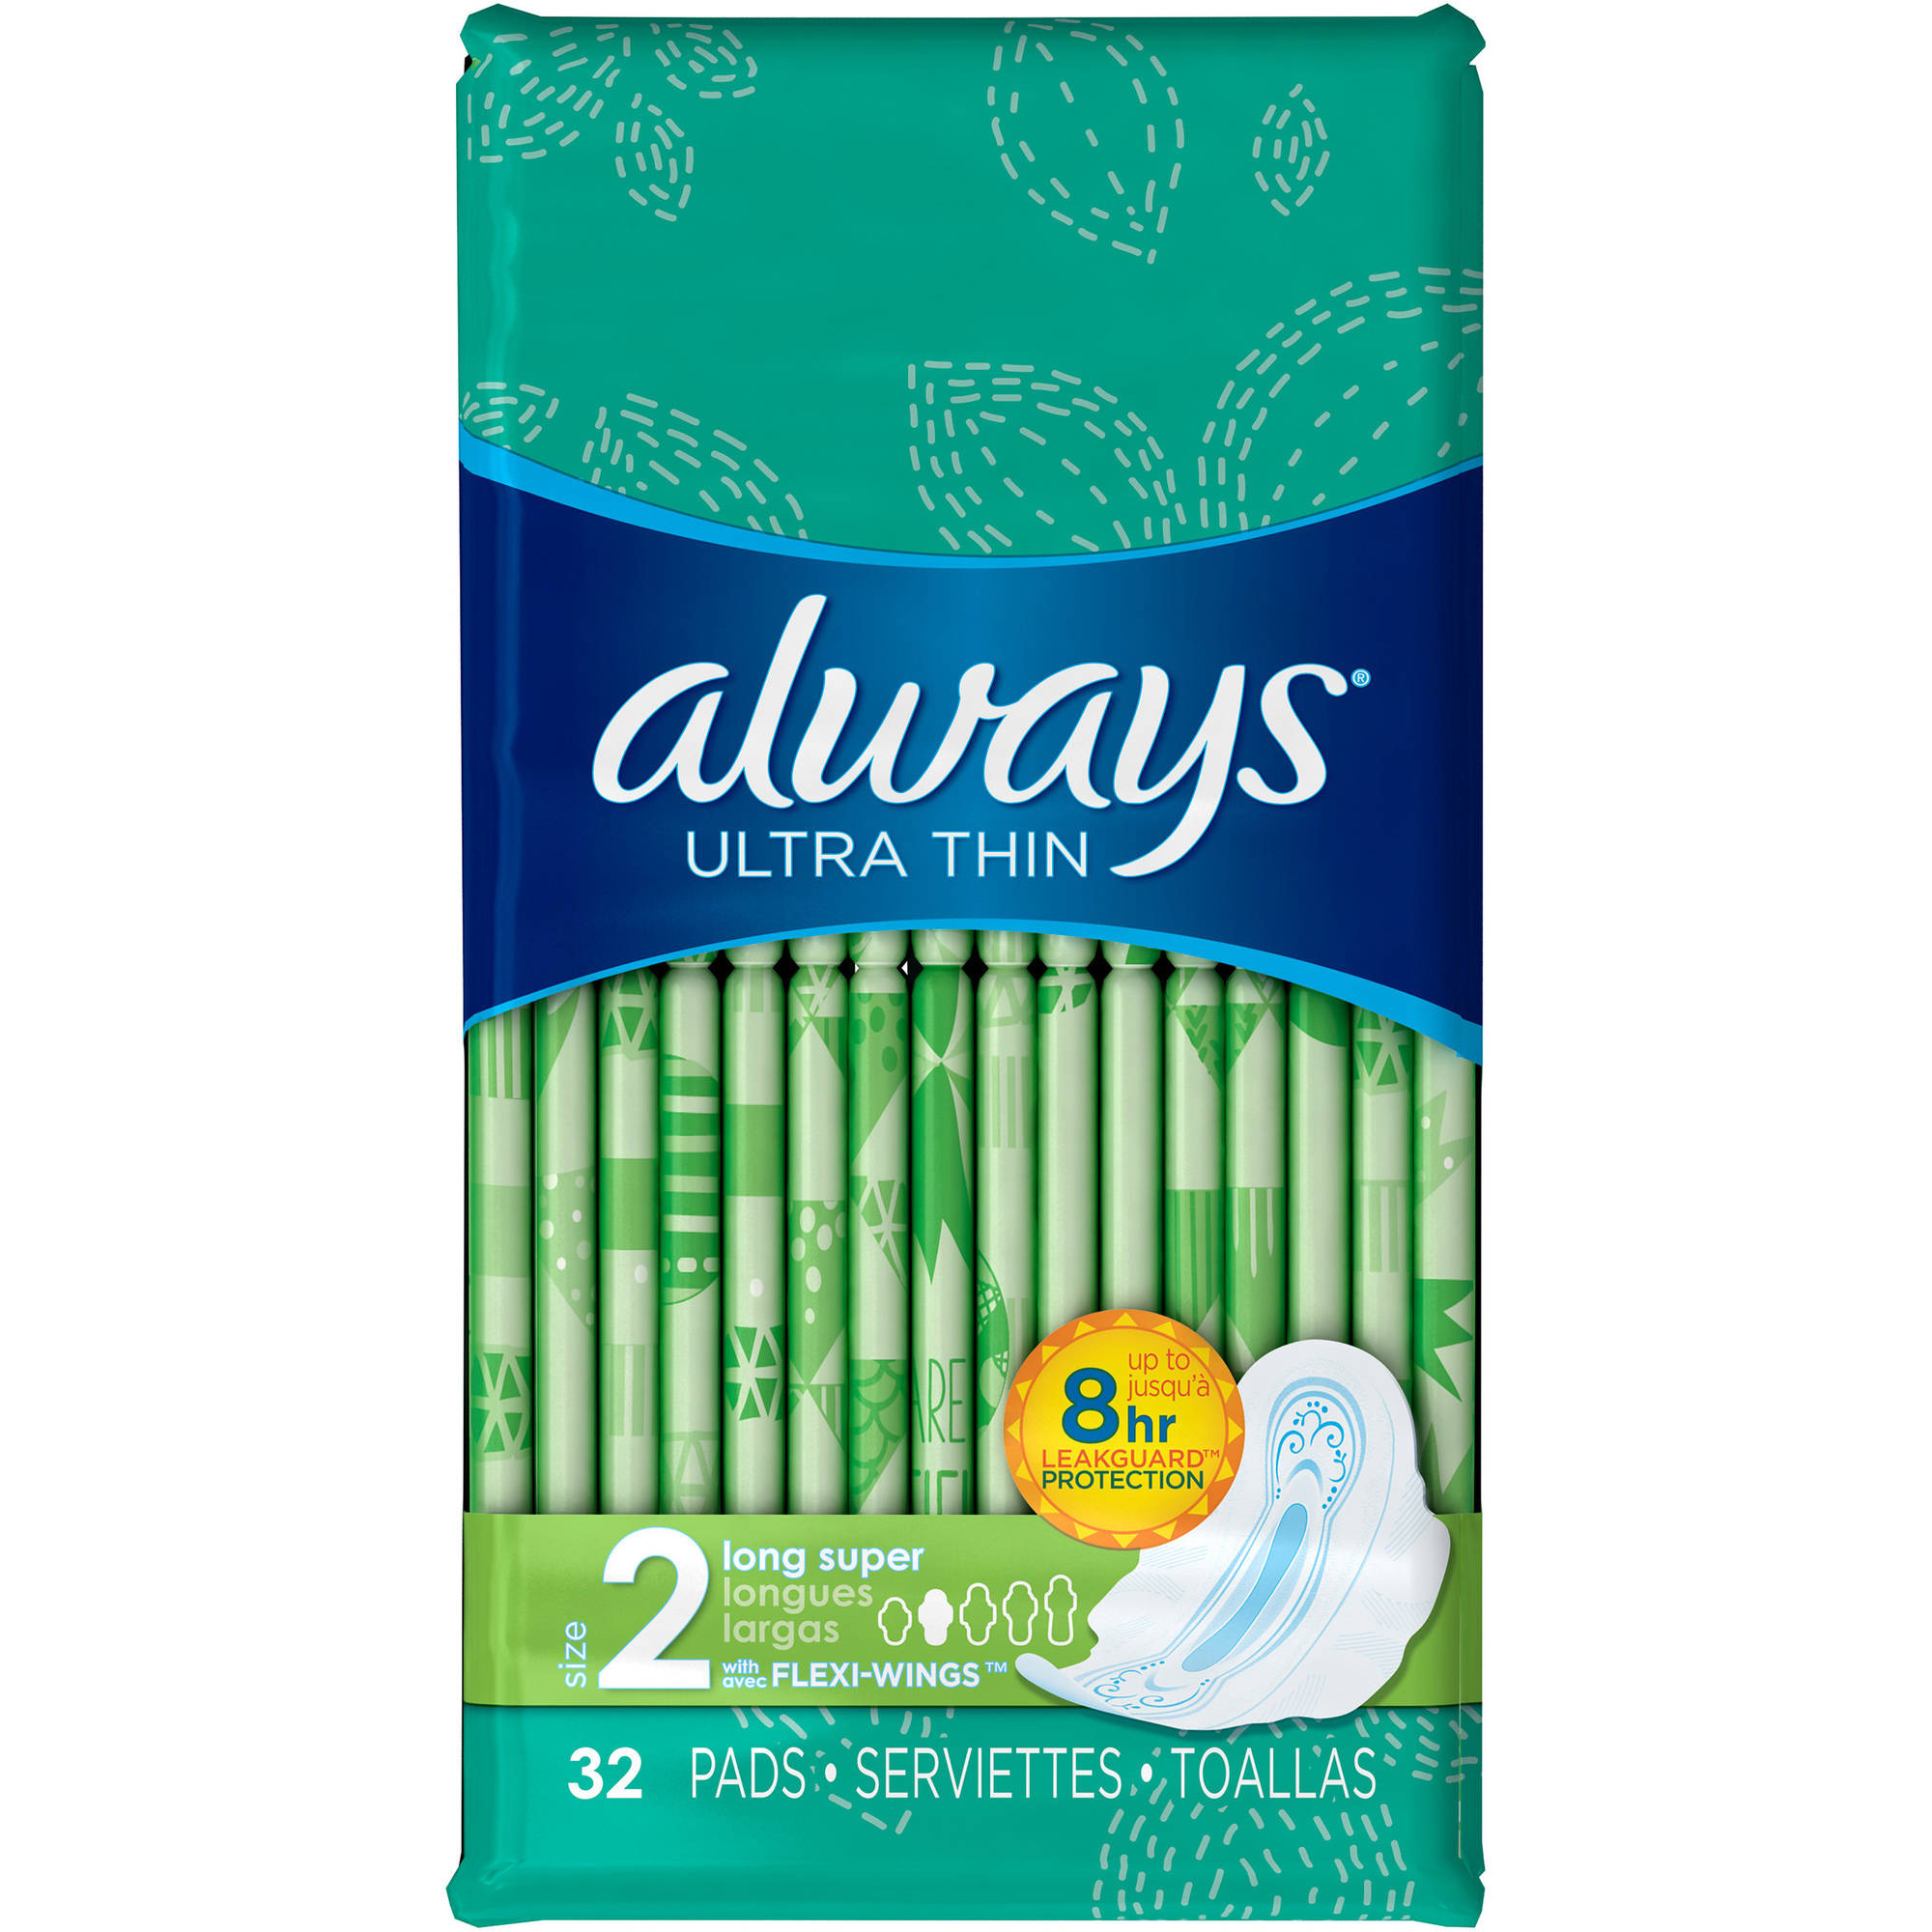 Always Ultra Thin Long Super Pads with Flexi-Wings, 32 count